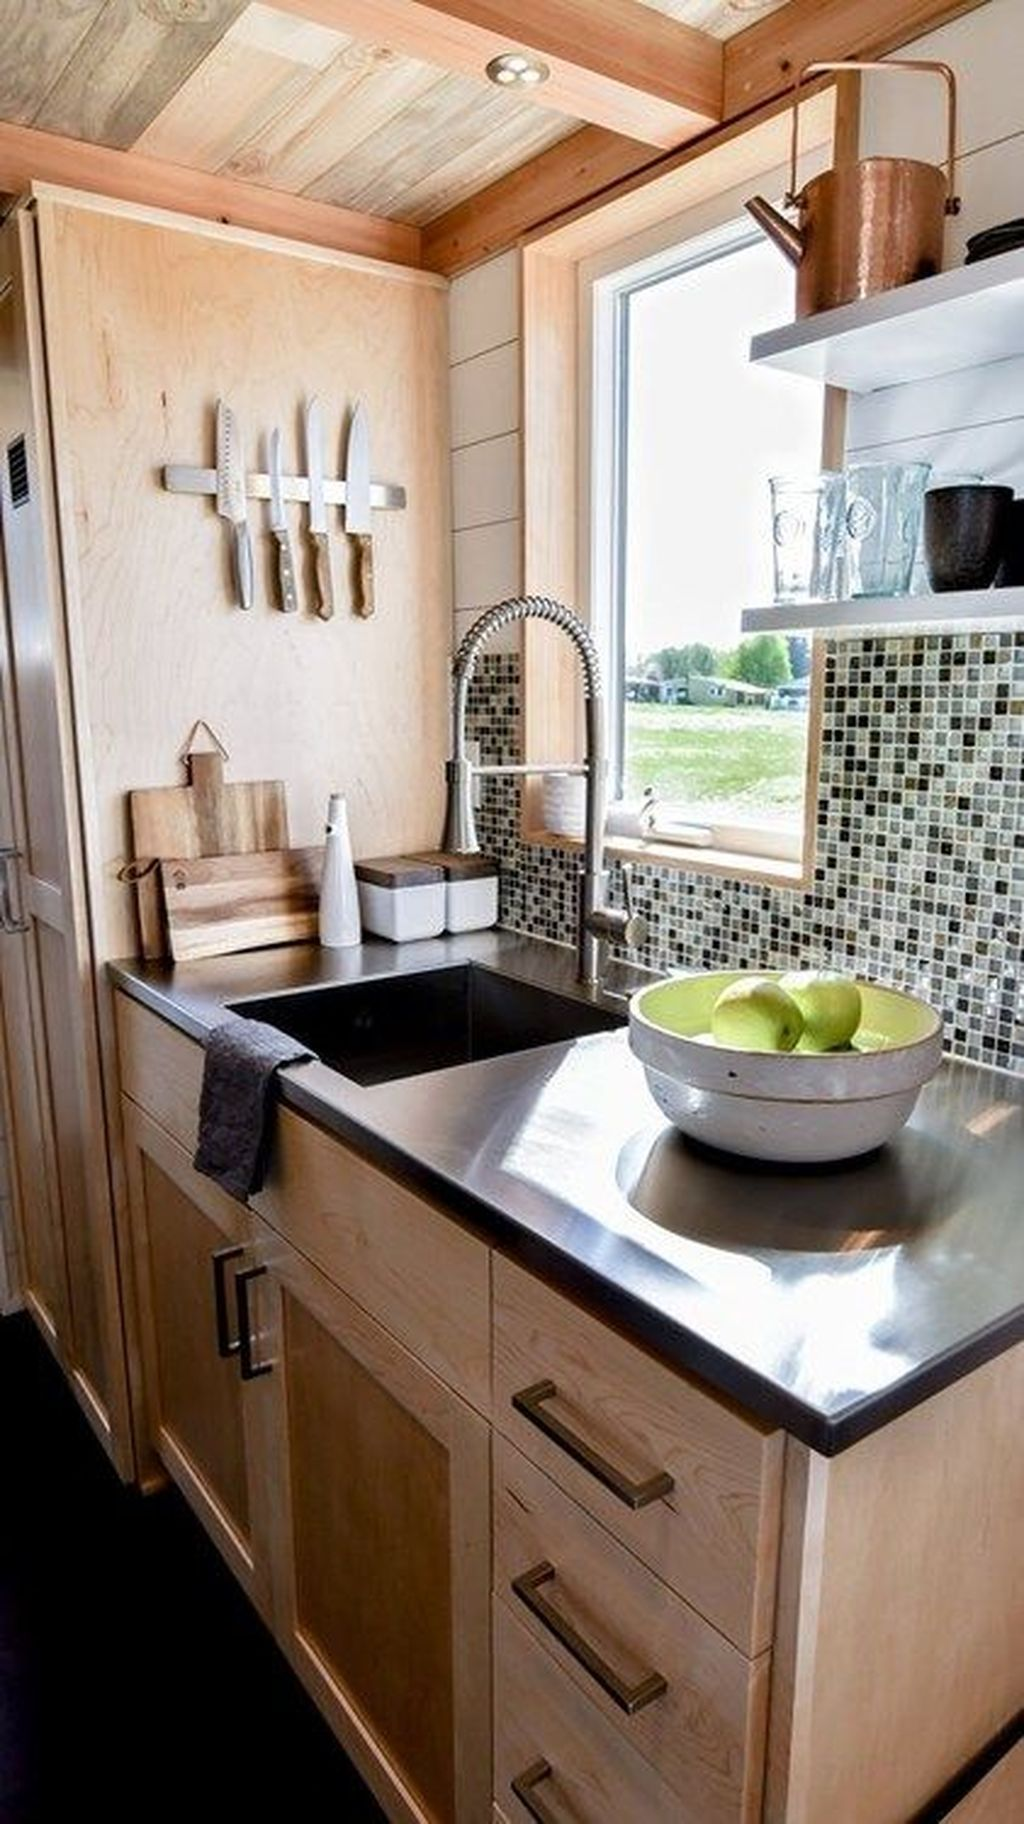 30 Wonderful Kitchen Cabinets Ideas For Your Tiny House Tiny House Kitchen House Design Kitchen Tiny House Interior